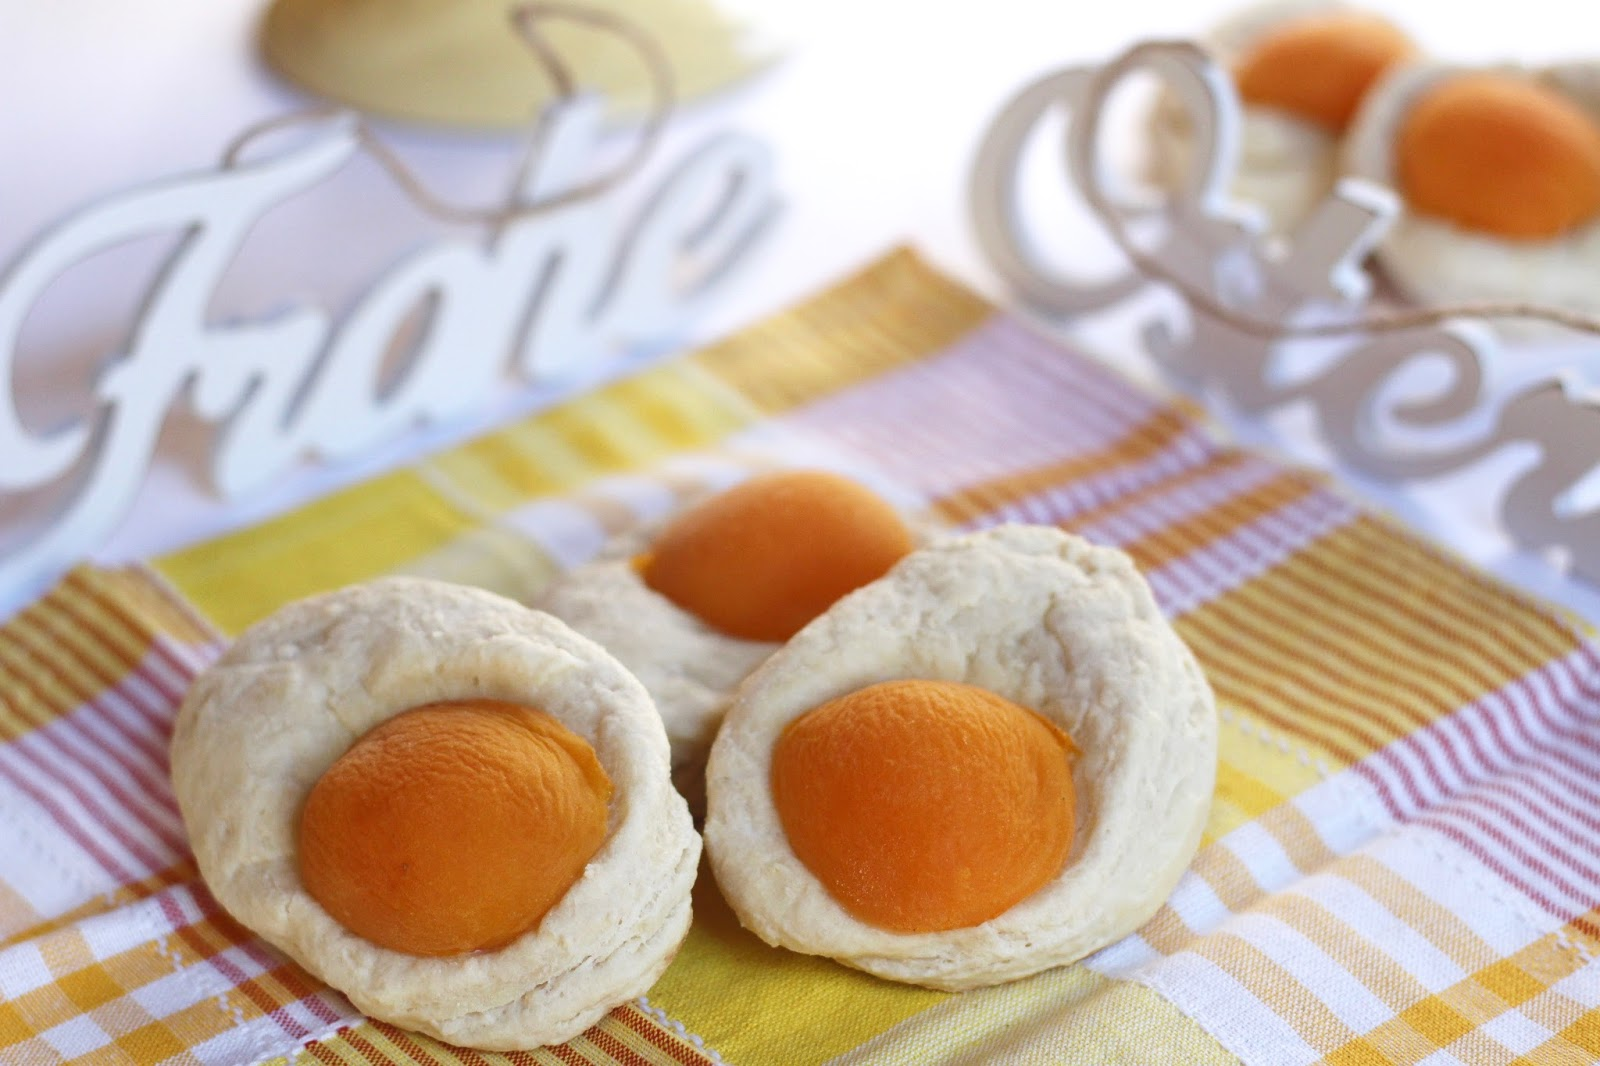 Apricot easter egg scones diary of a mad hausfrau for the most part this years easter recipes have been about the wow factor and flavor but most importantly time savers i wanted to present recipes that negle Images